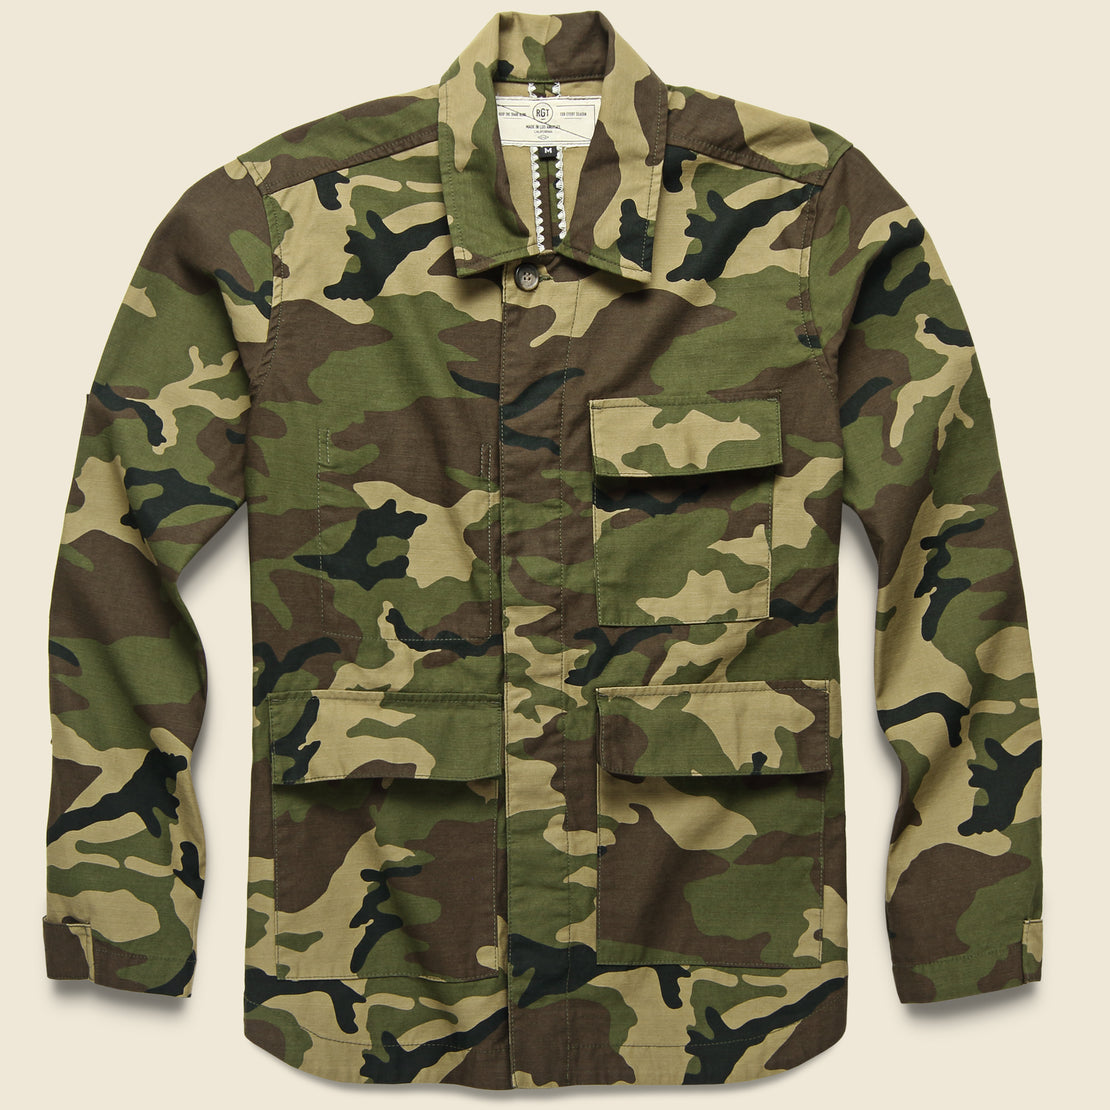 Rogue Territory Drifter Jacket - Olive Camo